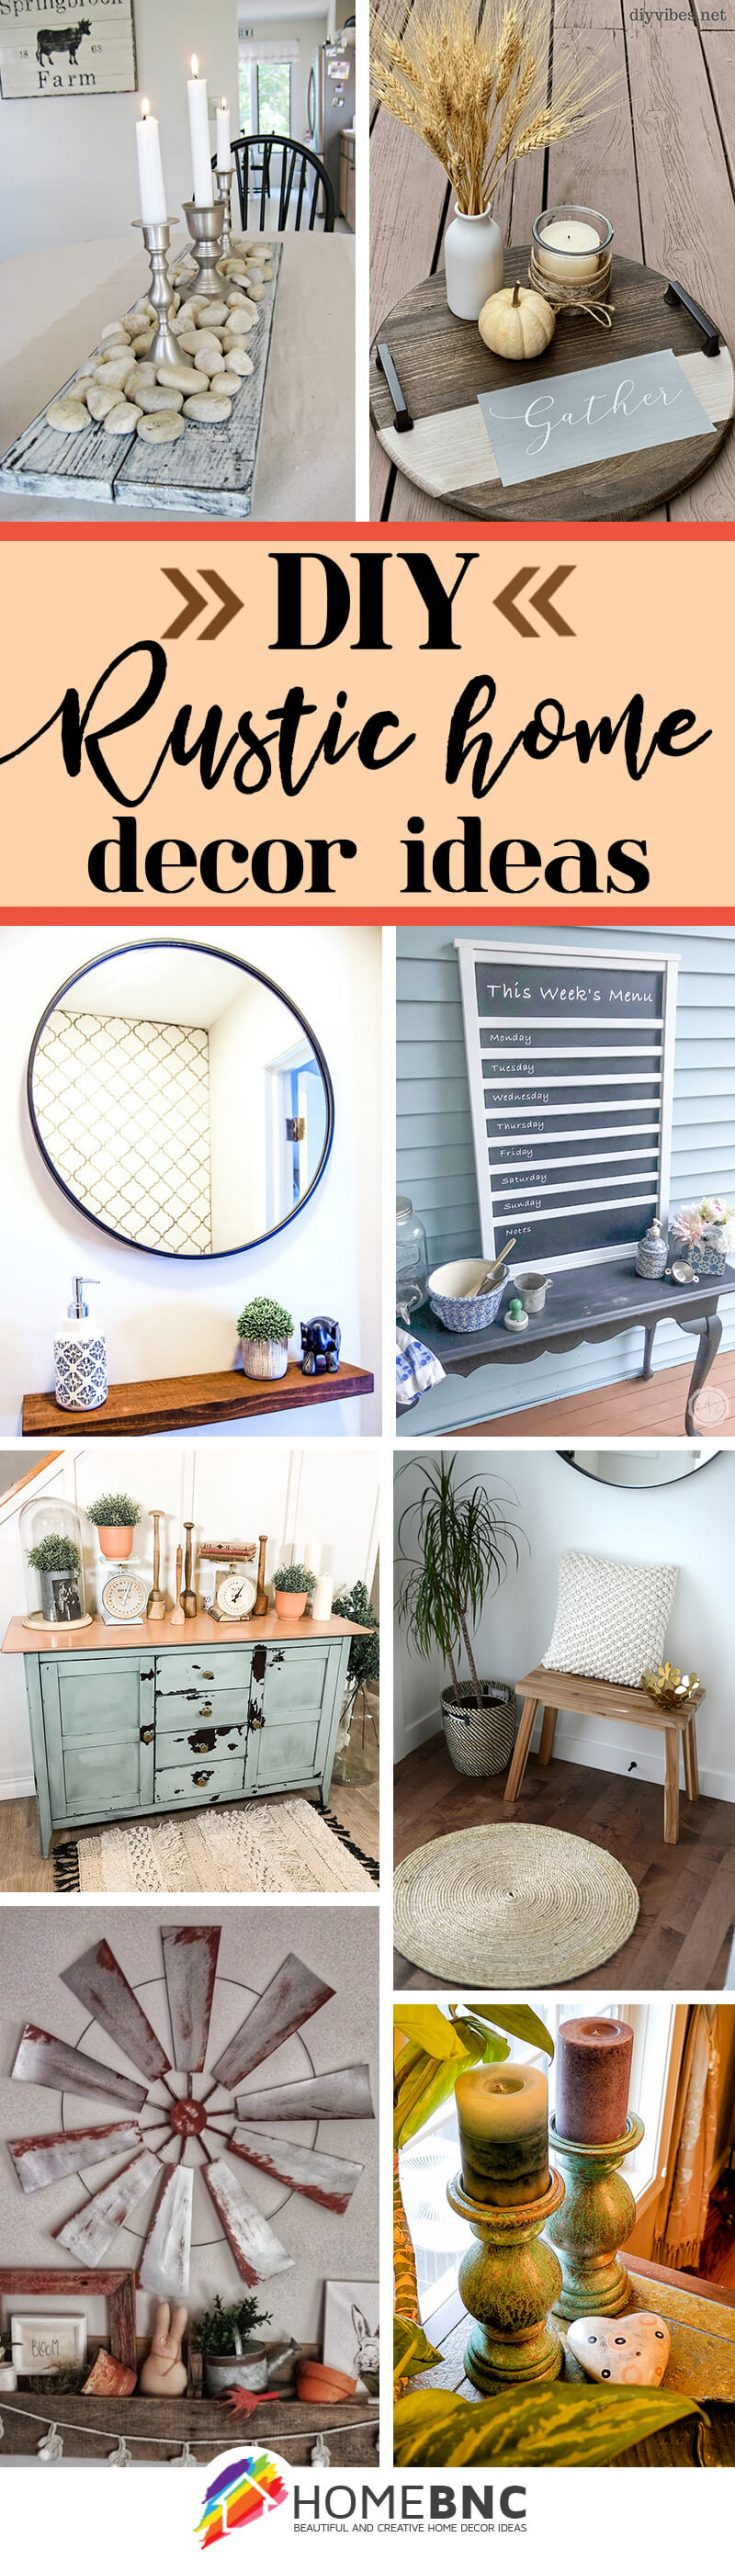 20+ Best DIY Rustic Home Decor Ideas and Designs for 20